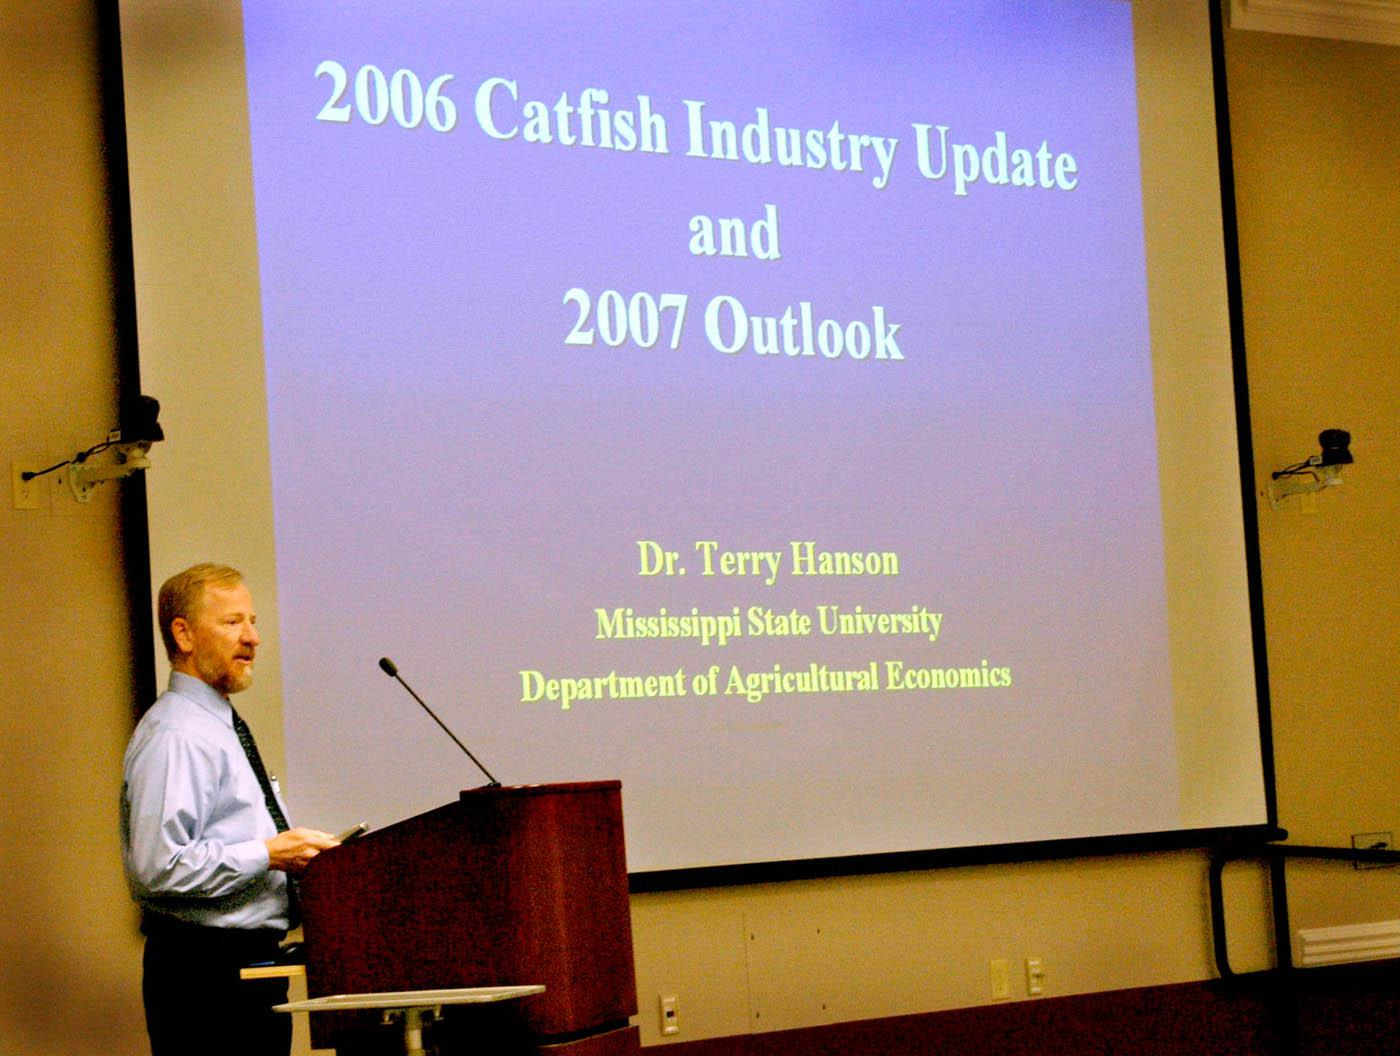 Mississippi State University agricultural economist Terry Hanson speaks at the National Warmwater Aquaculture Center's Fall 2006 catfish seminar held recently at MSU's Delta Research and Extension Center in Stoneville. Hanson told the crowd that rising corn demand will lead to even higher catfish feed prices for farmers in the coming year. (Photo by Robert H. Wells/Delta Research and Extension Center)